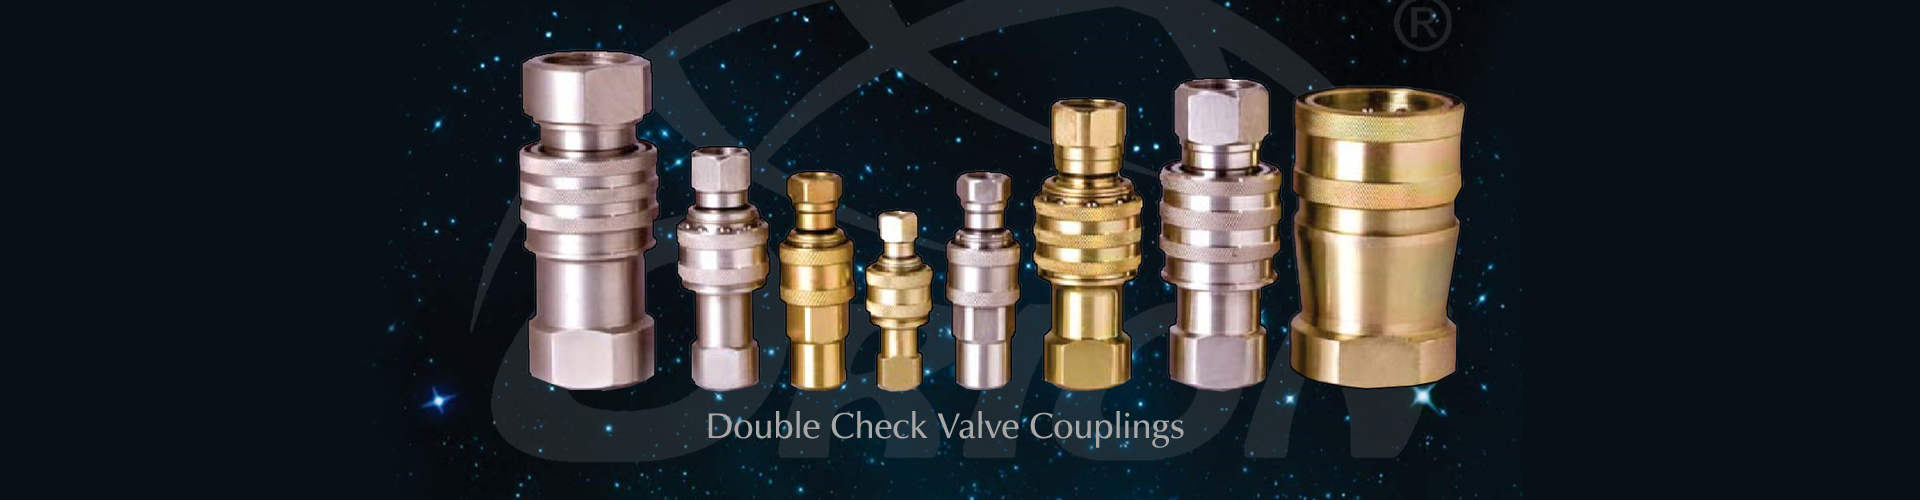 double check valve couplings